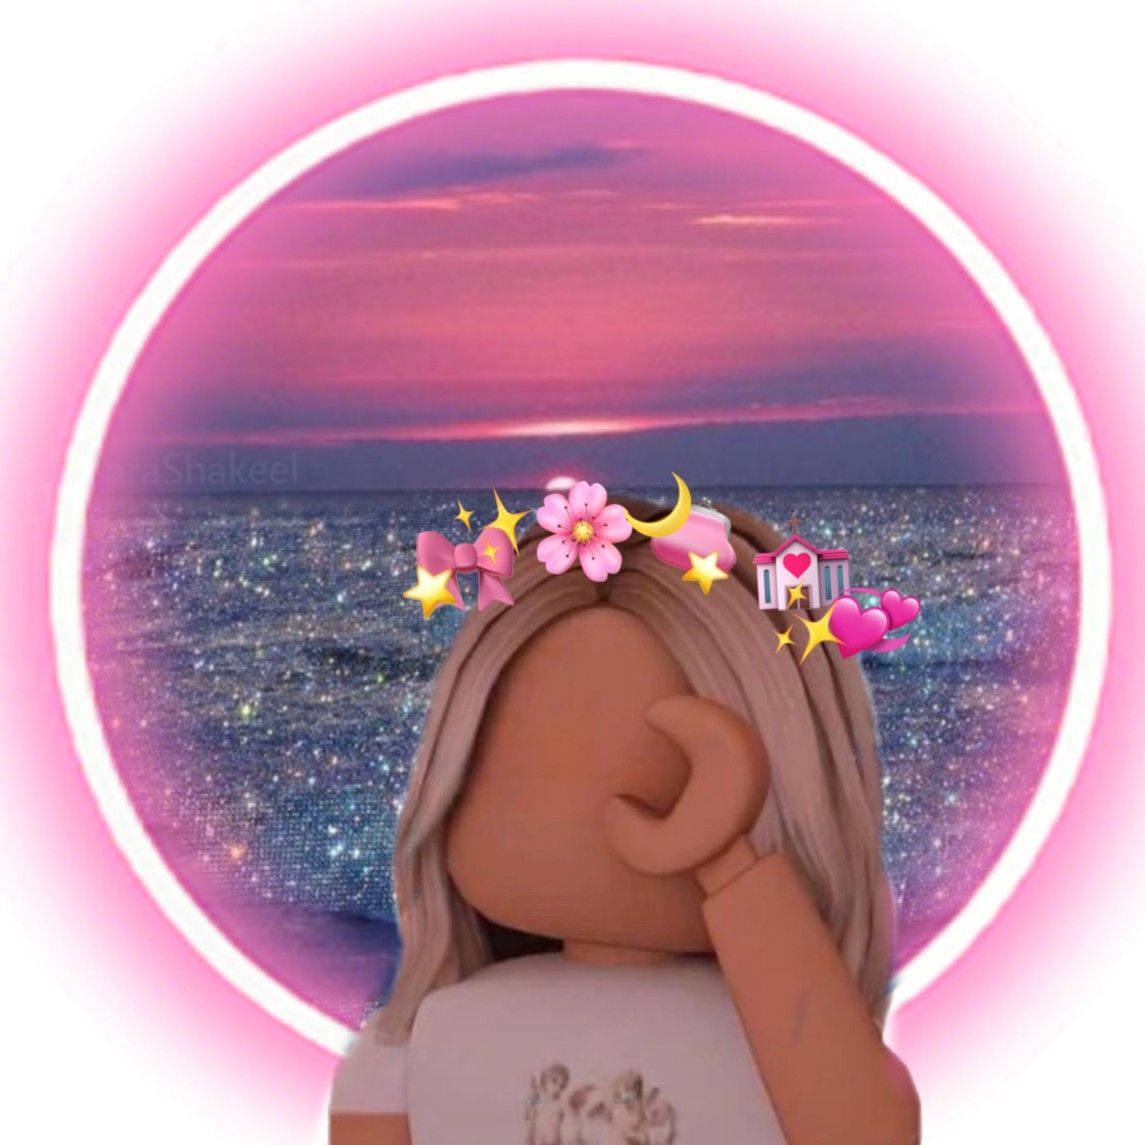 Pink Aesthetic Roblox Avatar In 2020 Roblox Pictures Cute Tumblr Wallpaper Roblox Animation